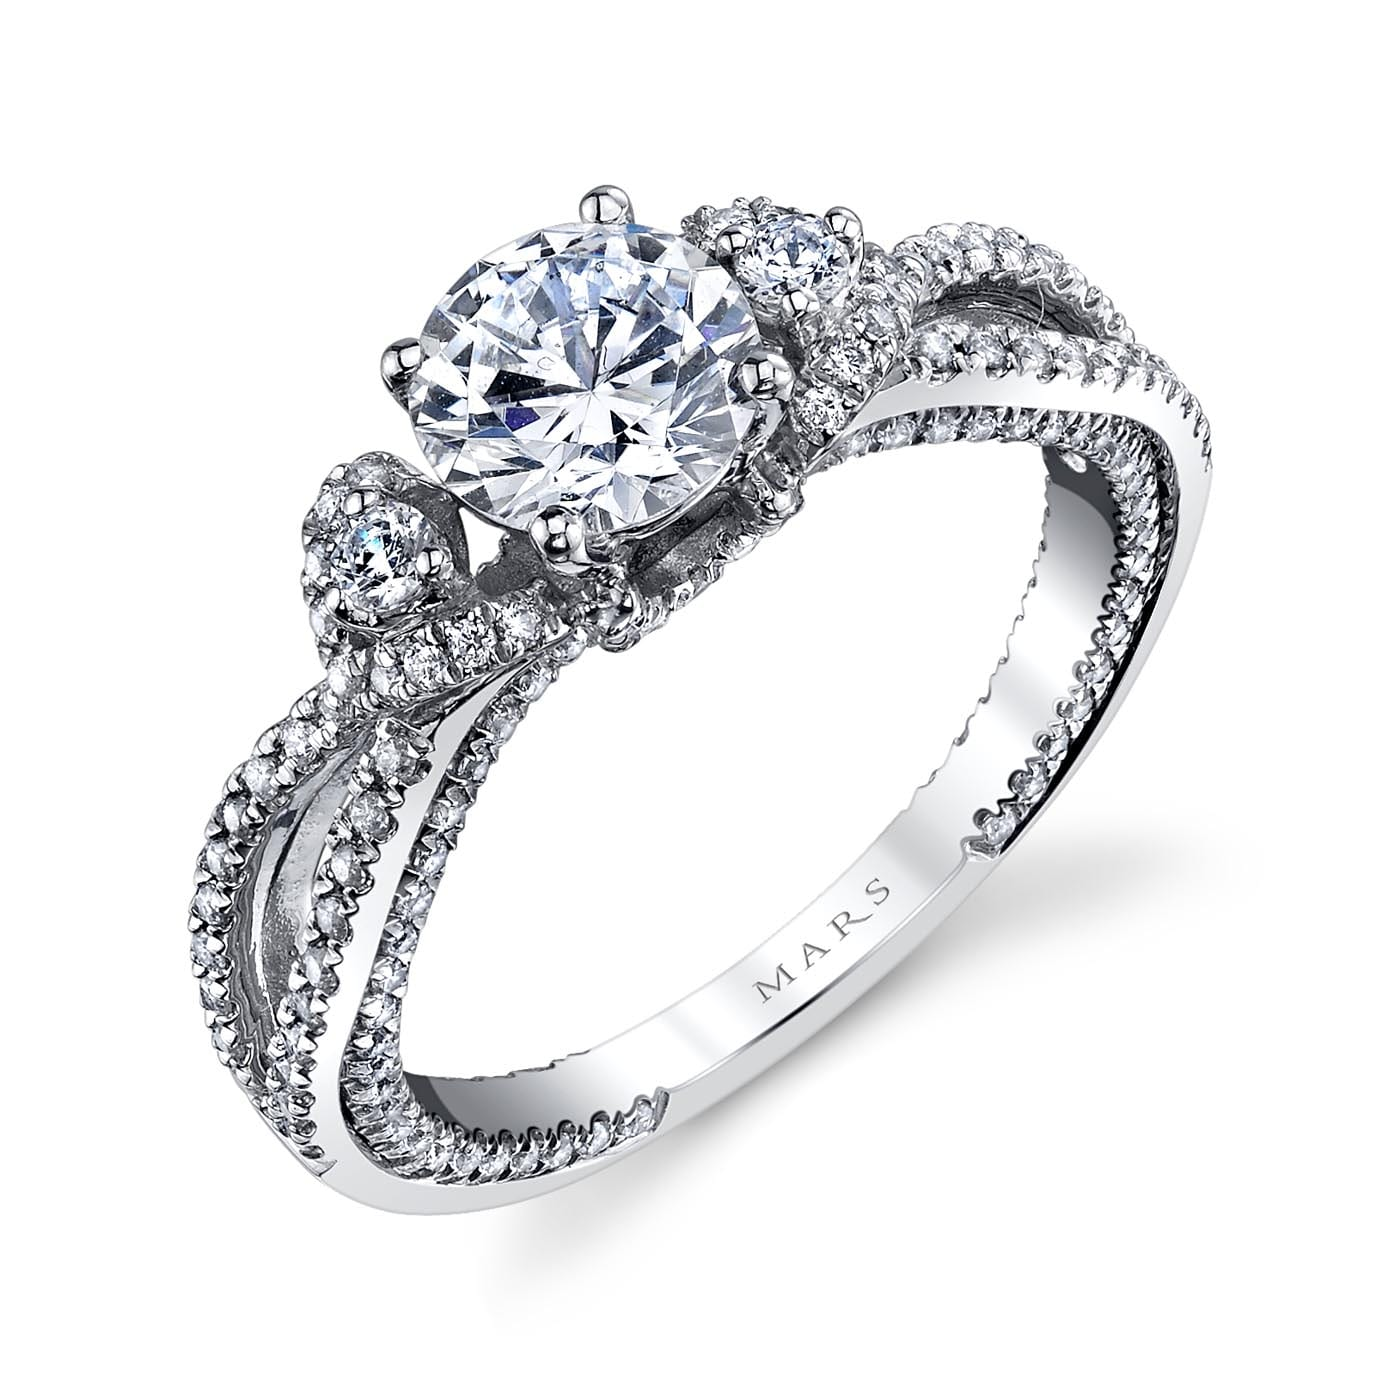 Floral Engagement RingStyle #: MARS 26088